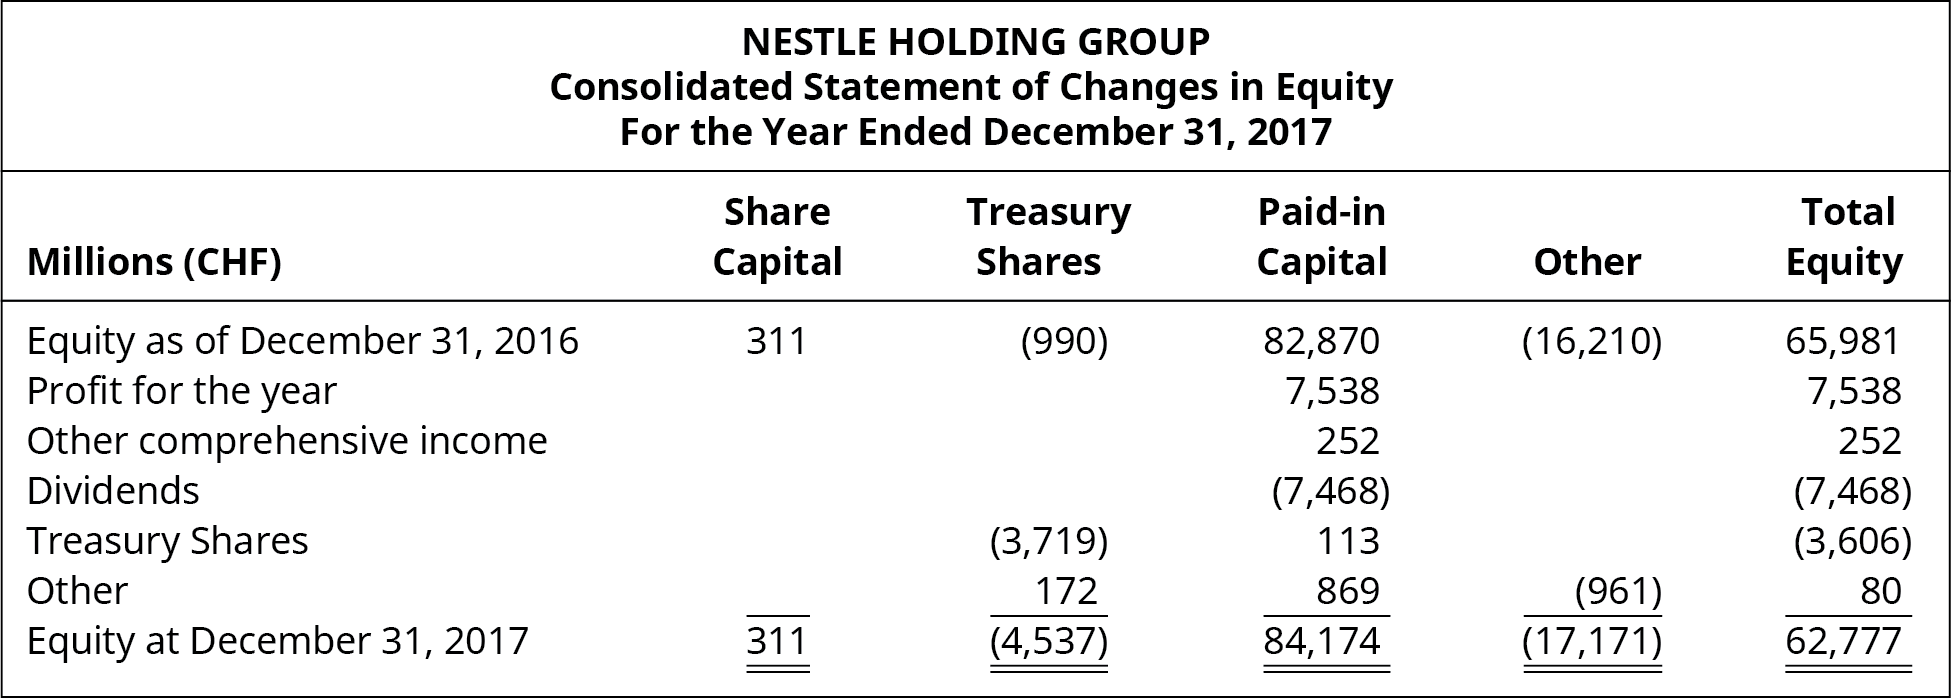 Nestle Holding Group, Consolidated Statement of Changes in Equity, For the Year Ended December 31, 2017.